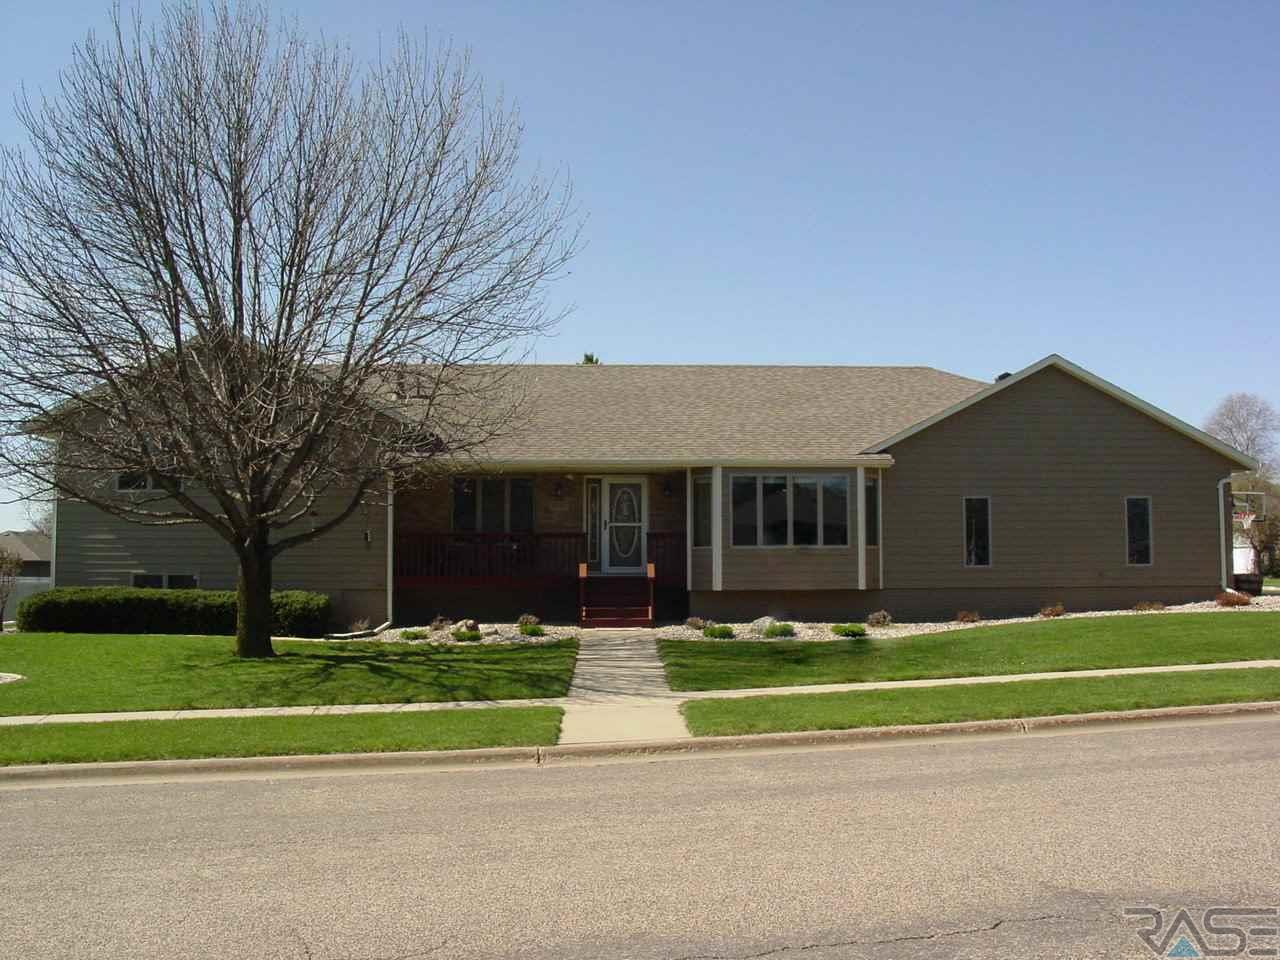 6705 W Silver Valley Dr, Sioux Falls, SD 57106